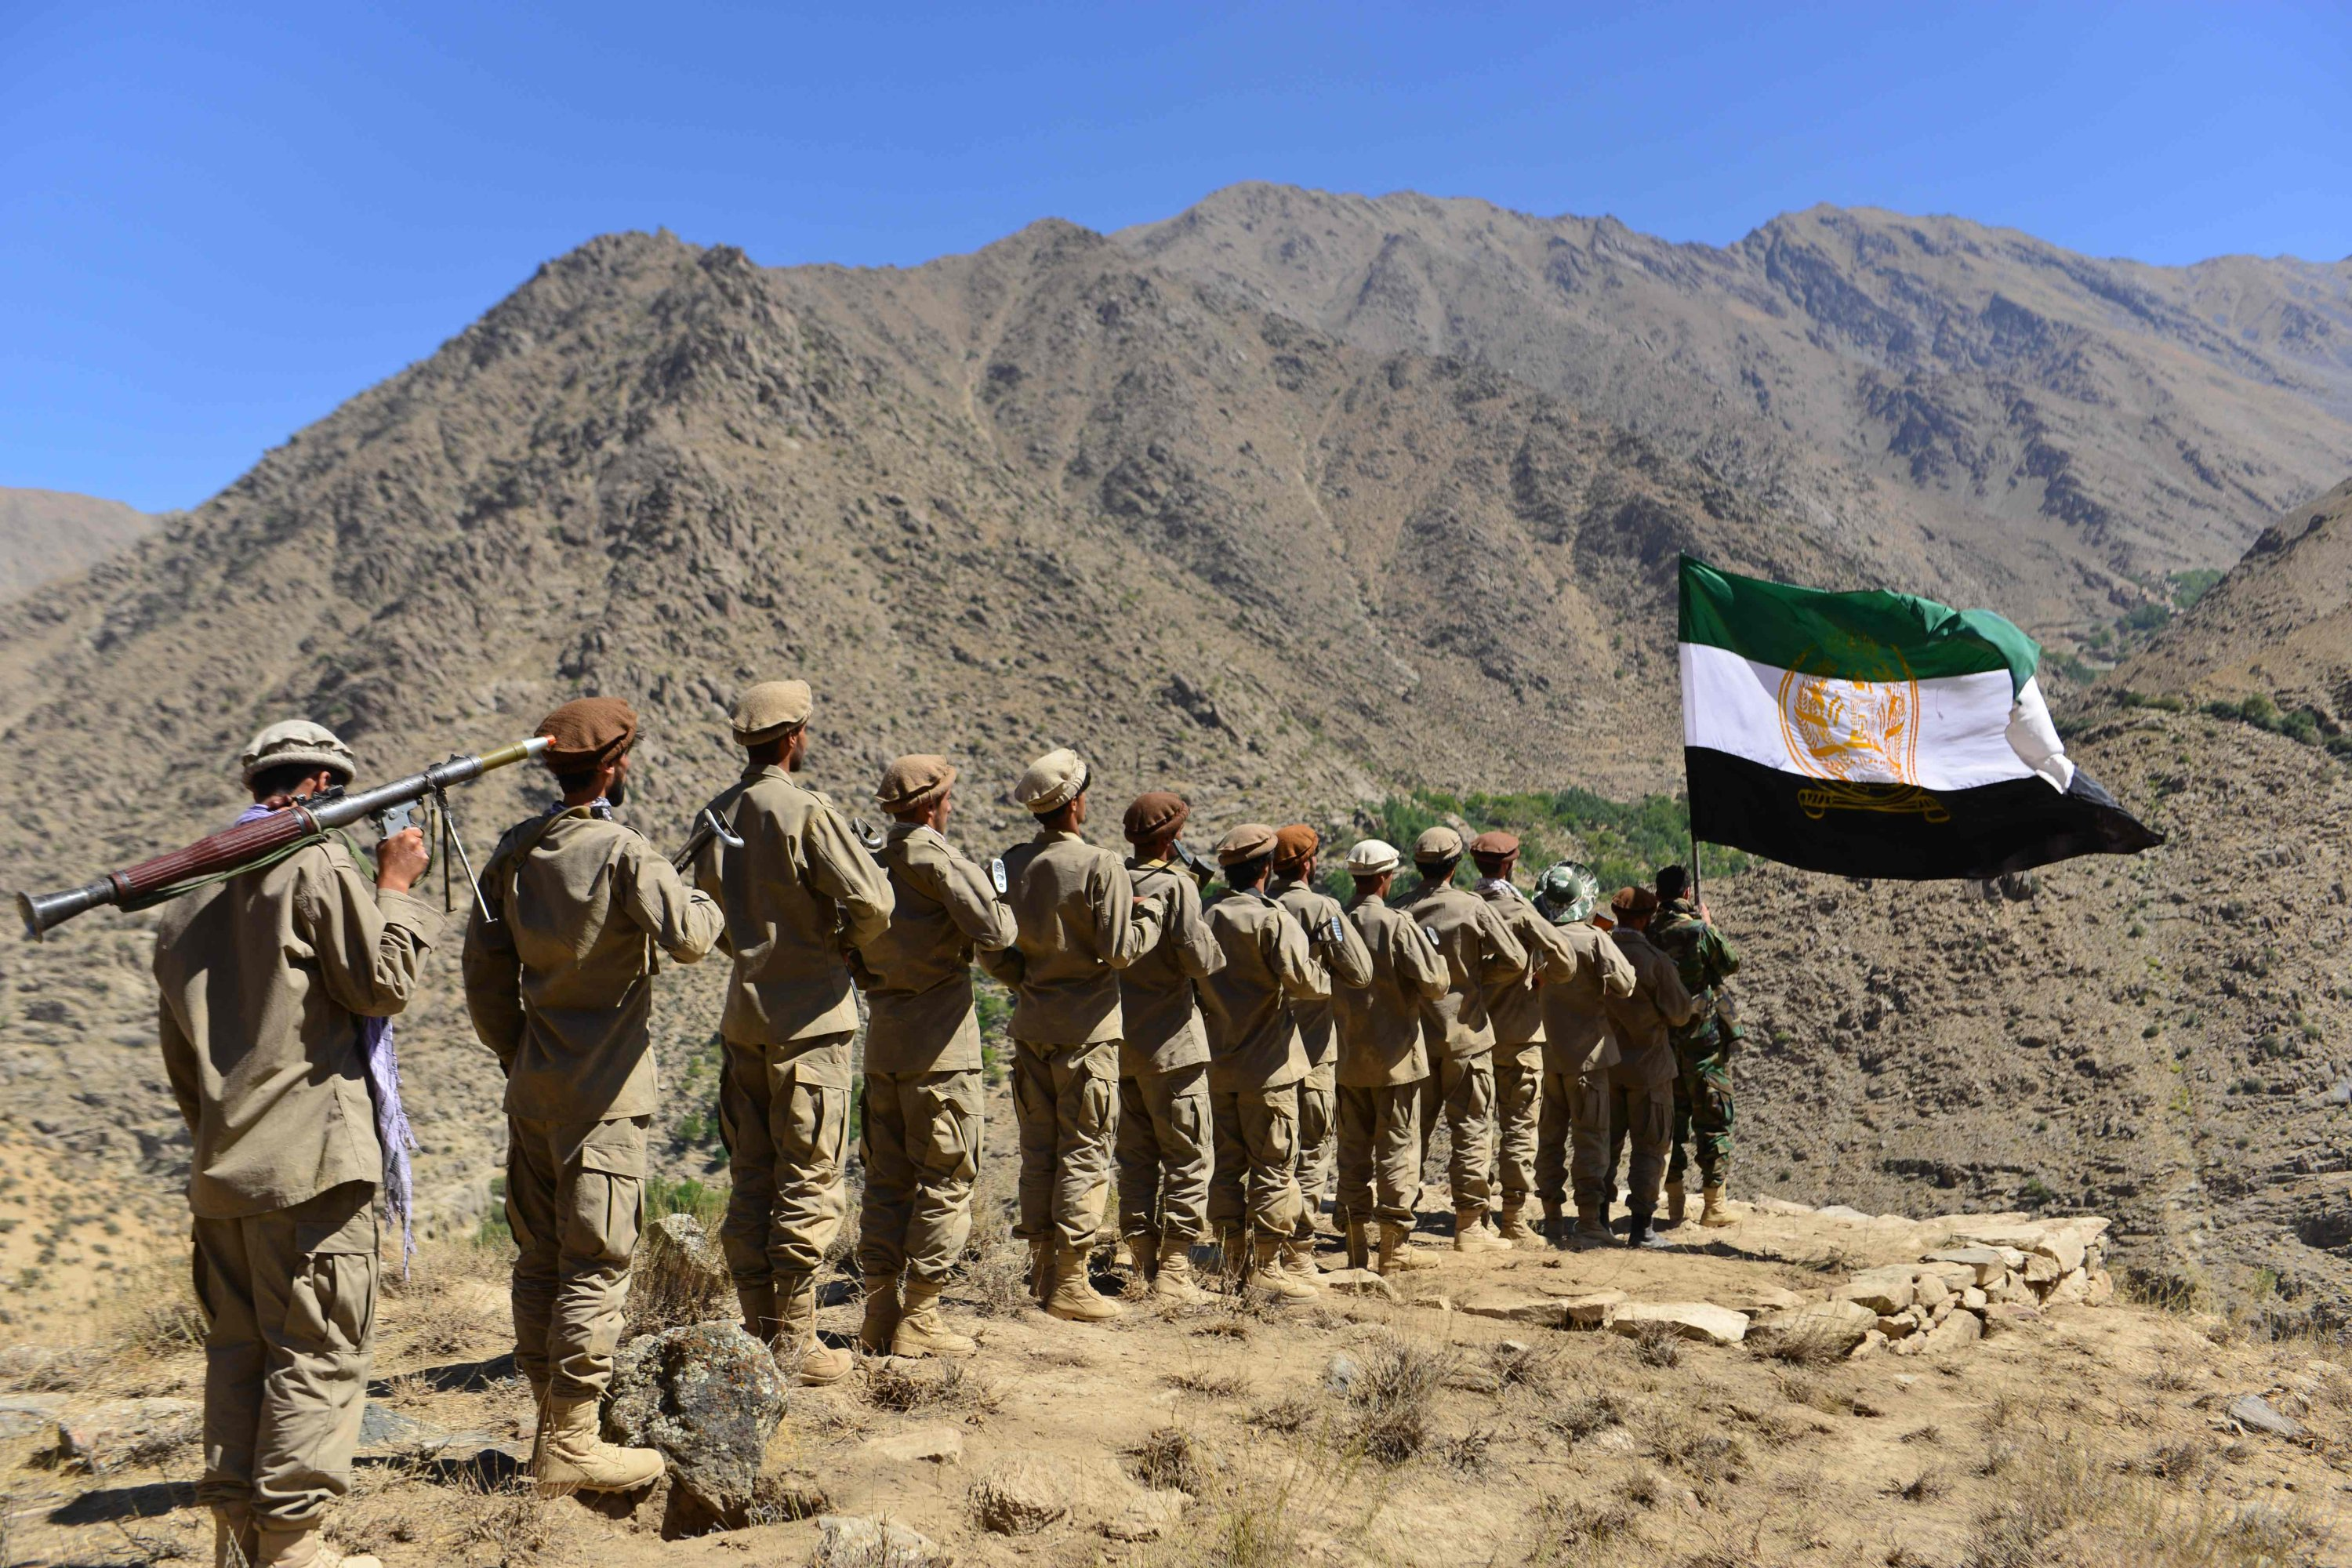 Afghan resistance movement and anti-Taliban uprising forces take part in military training at the Malimah area of Dara district in Panjshir province, Afghanistan, Sept. 2, 2021. (AFP Photo)